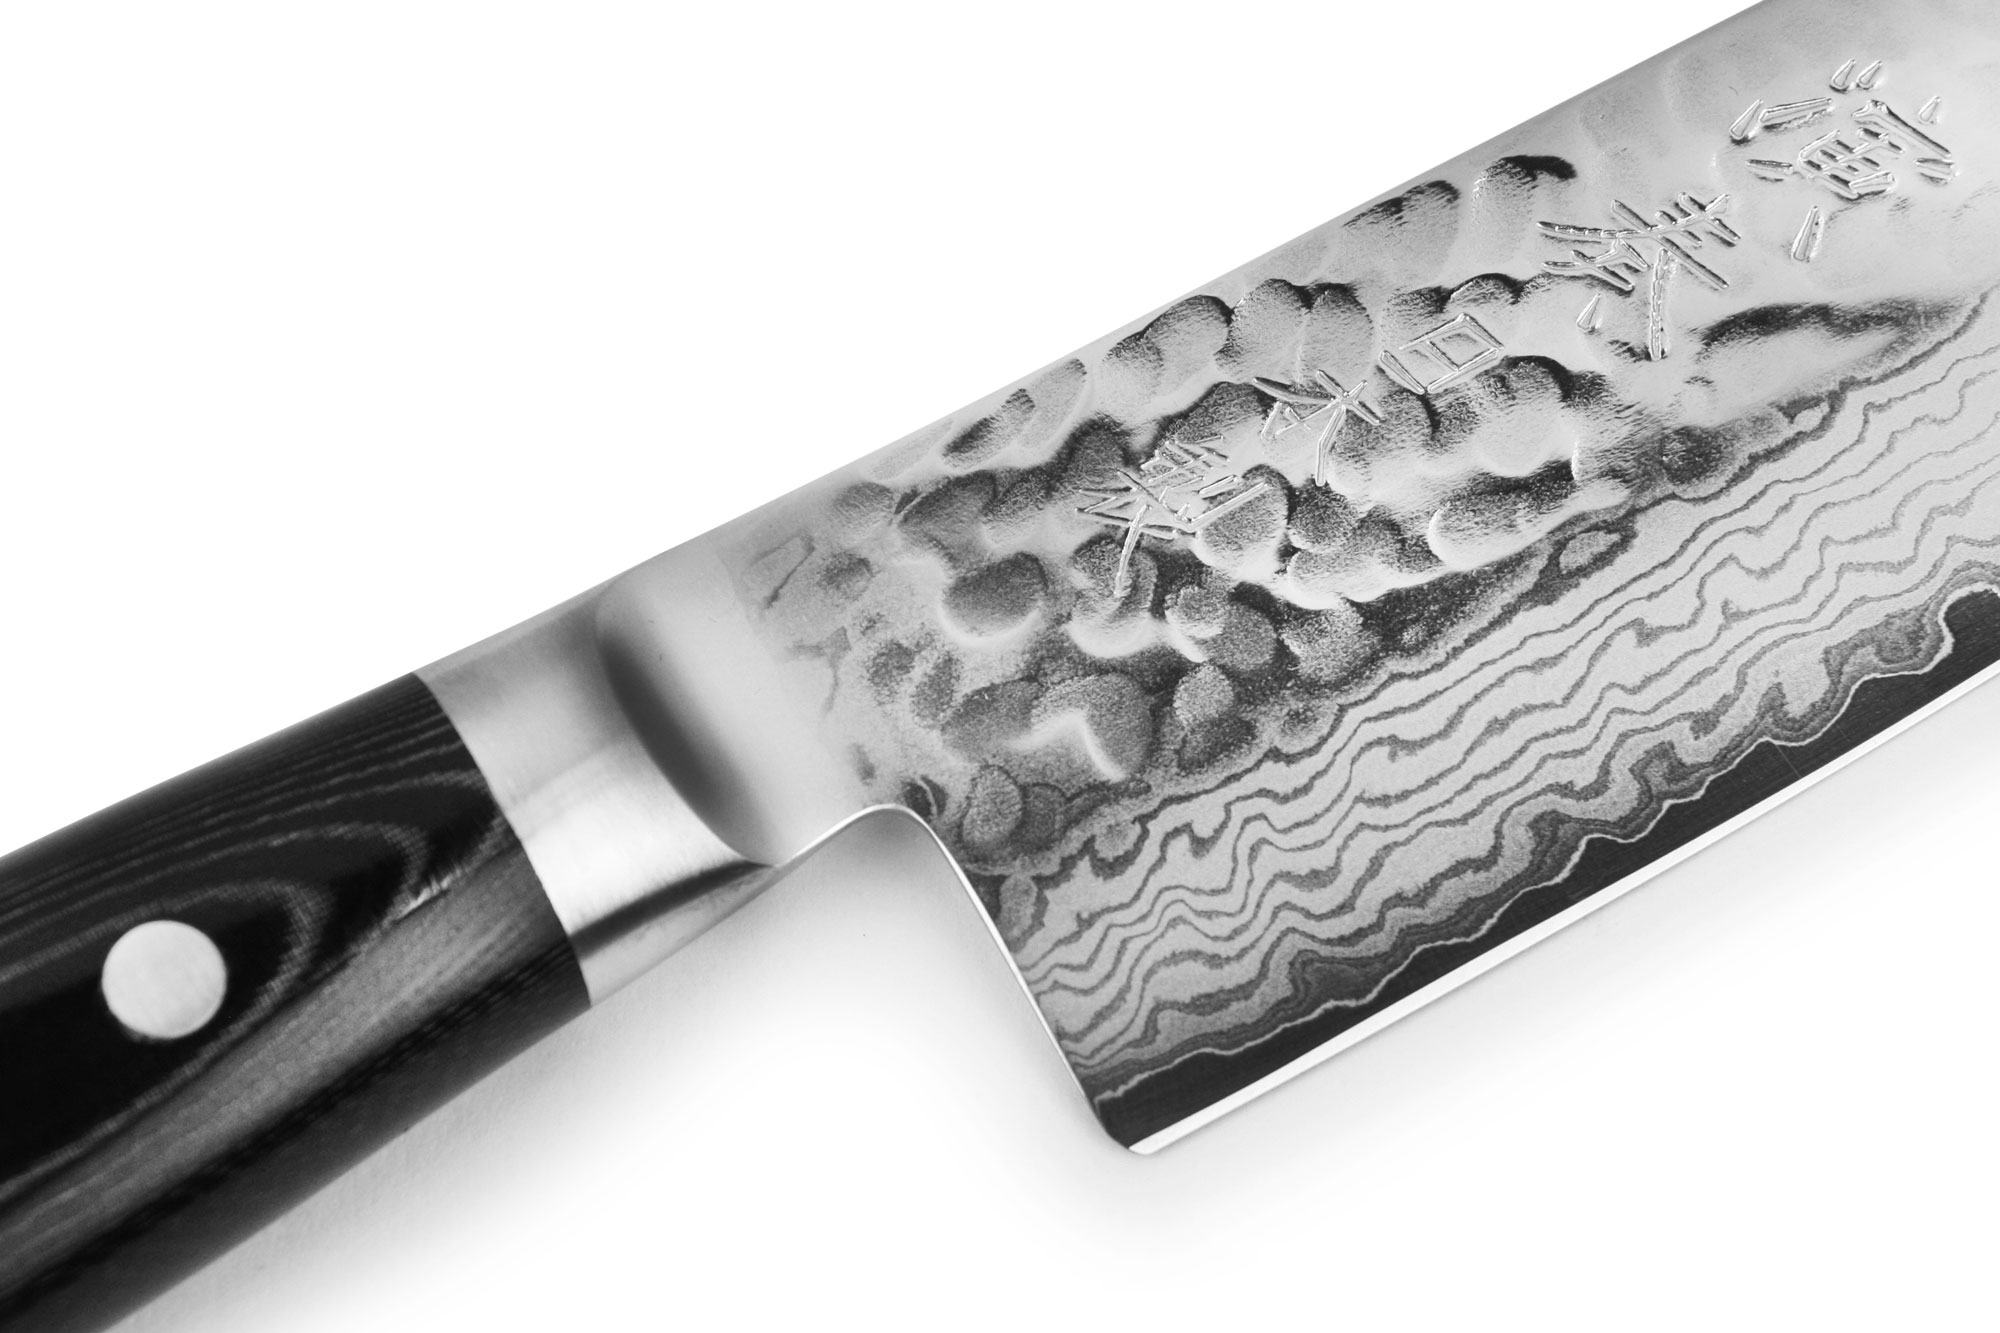 Enso HD Chef\'s Knife 8-inch - Japanese Kitchen Knives | Cutlery and More